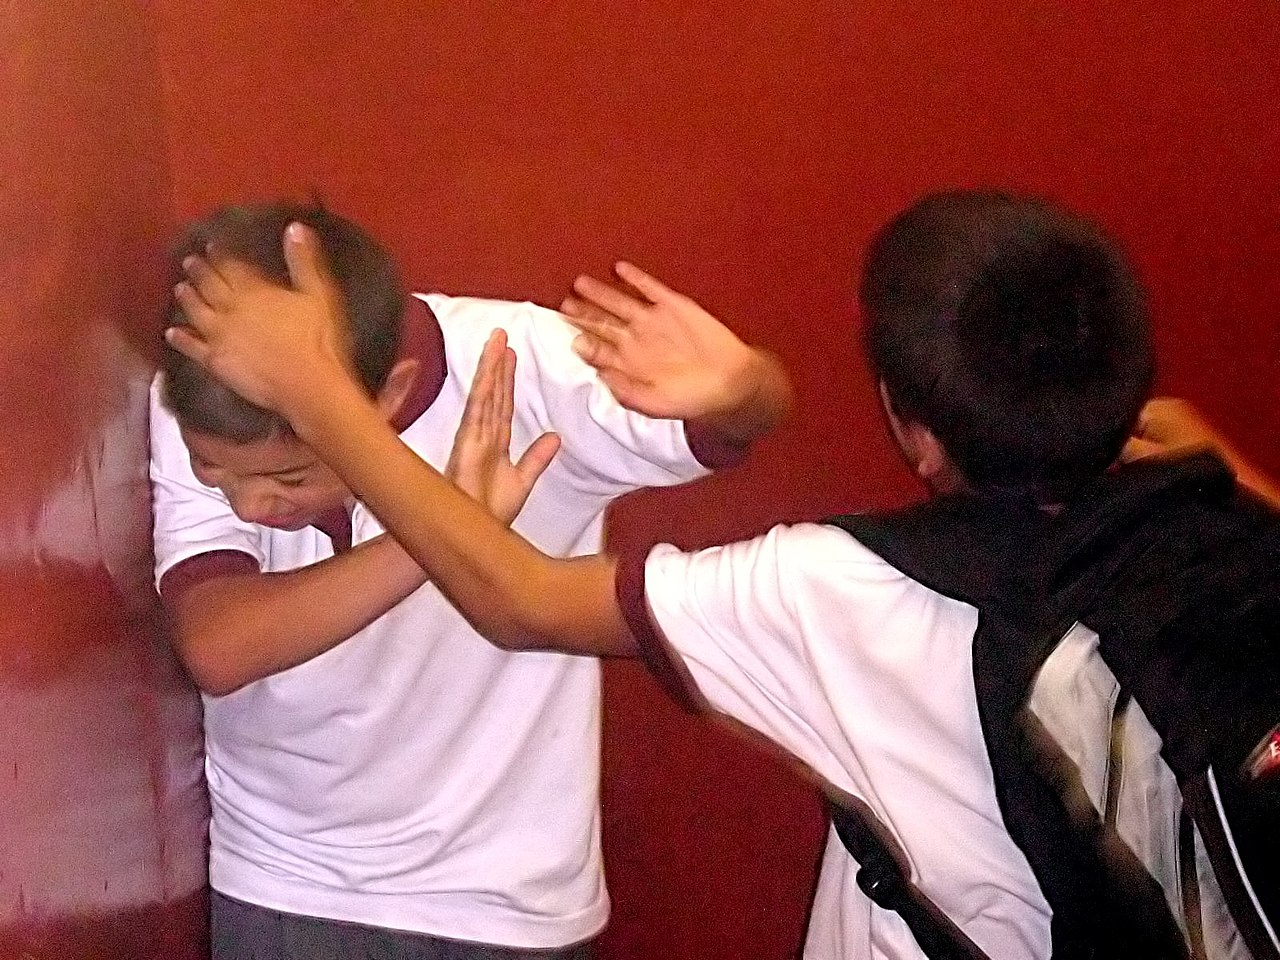 File:Bullying on Instituto Regional Federico Errázuriz (IRFE) in ...